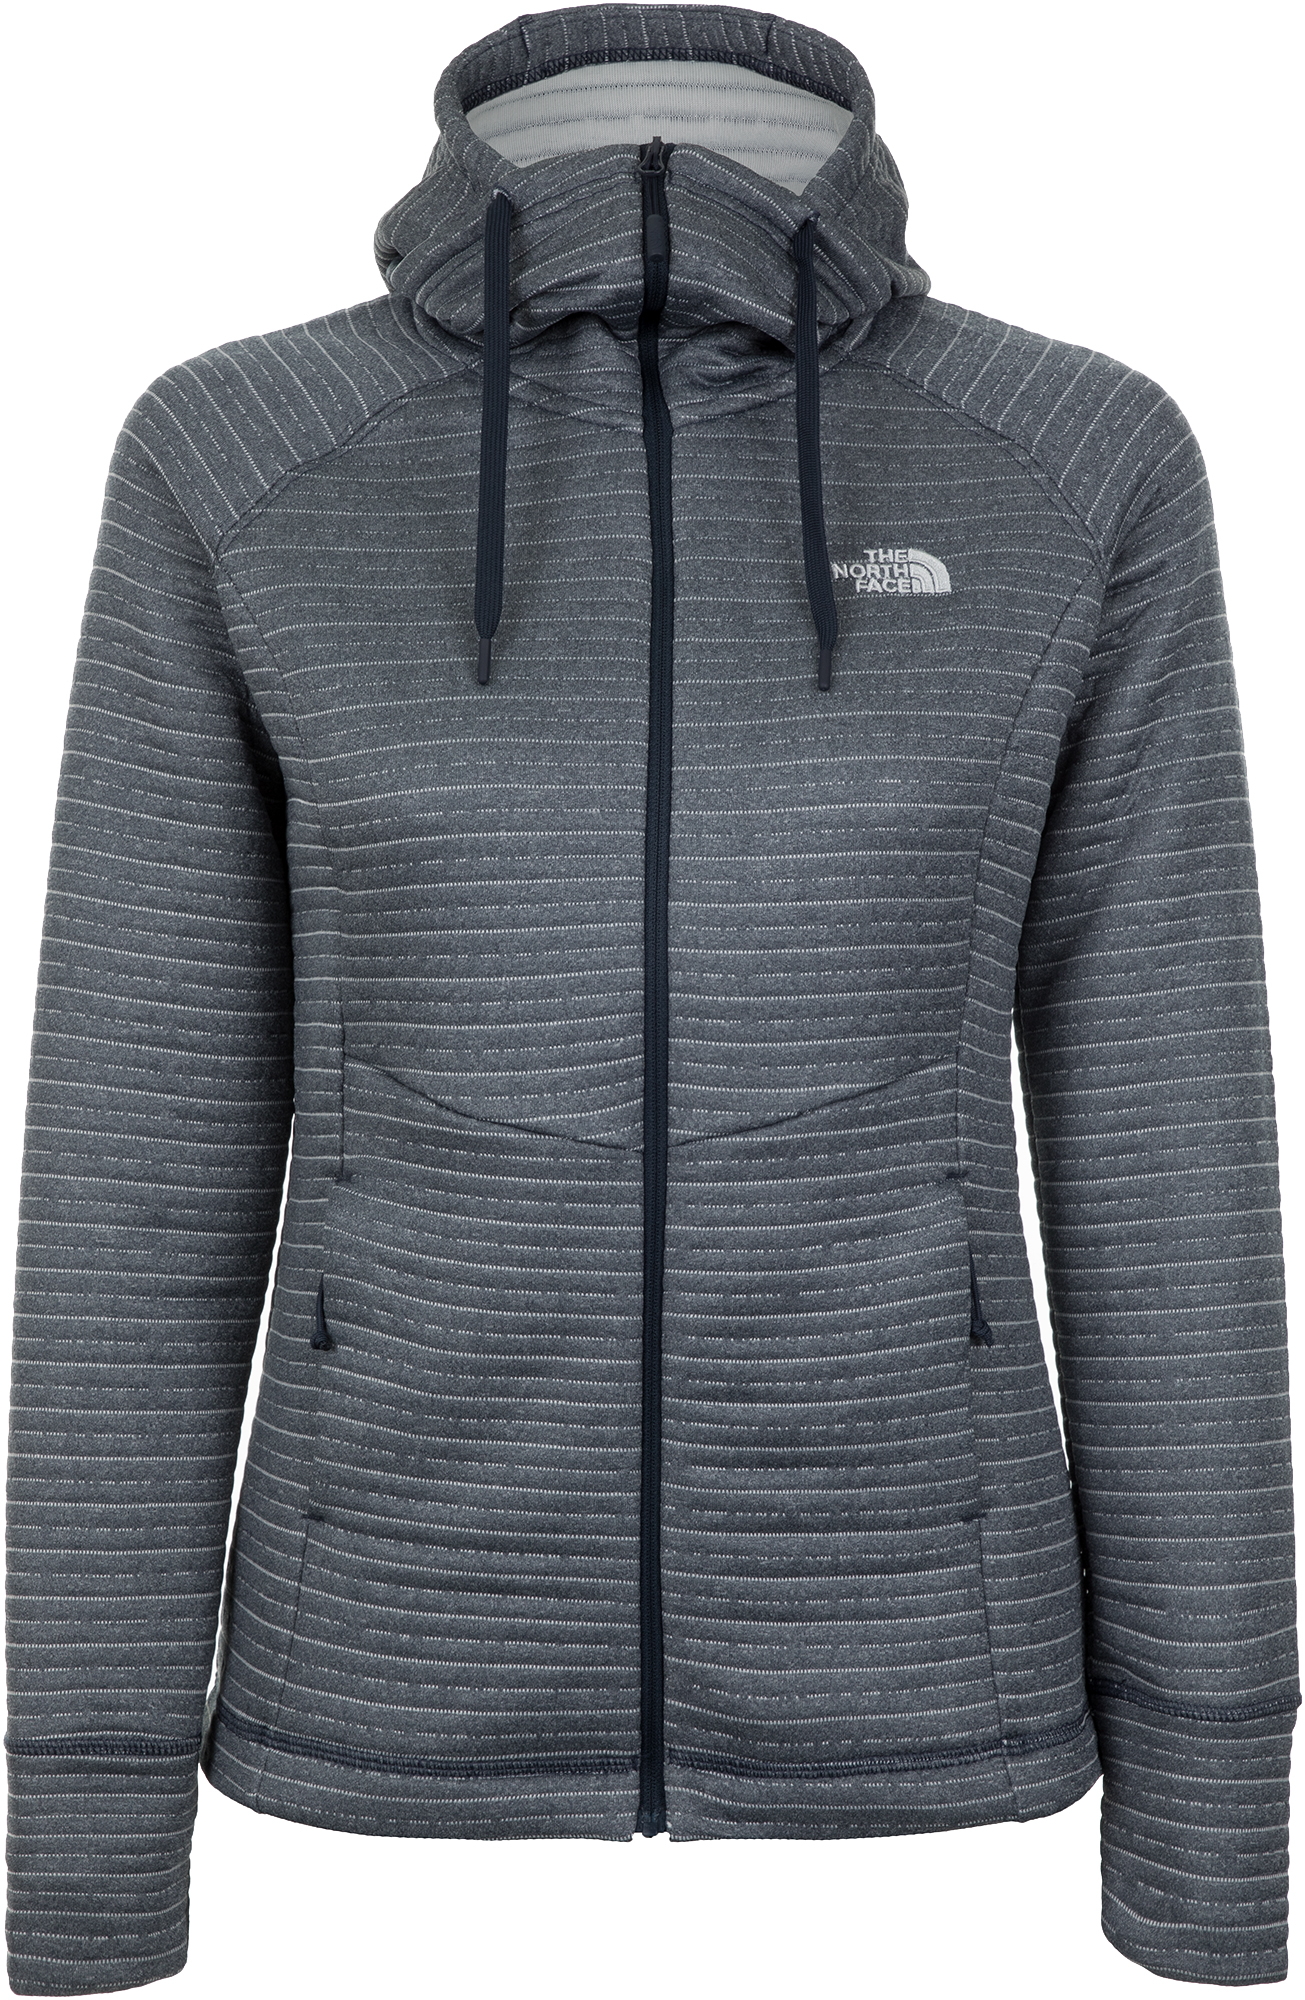 The North Face Джемпер флисовый женский The North Face Hikesteller Midlayer - Sg, размер 48 the north face джемпер флисовый женский the north face impendor powerdry размер 48